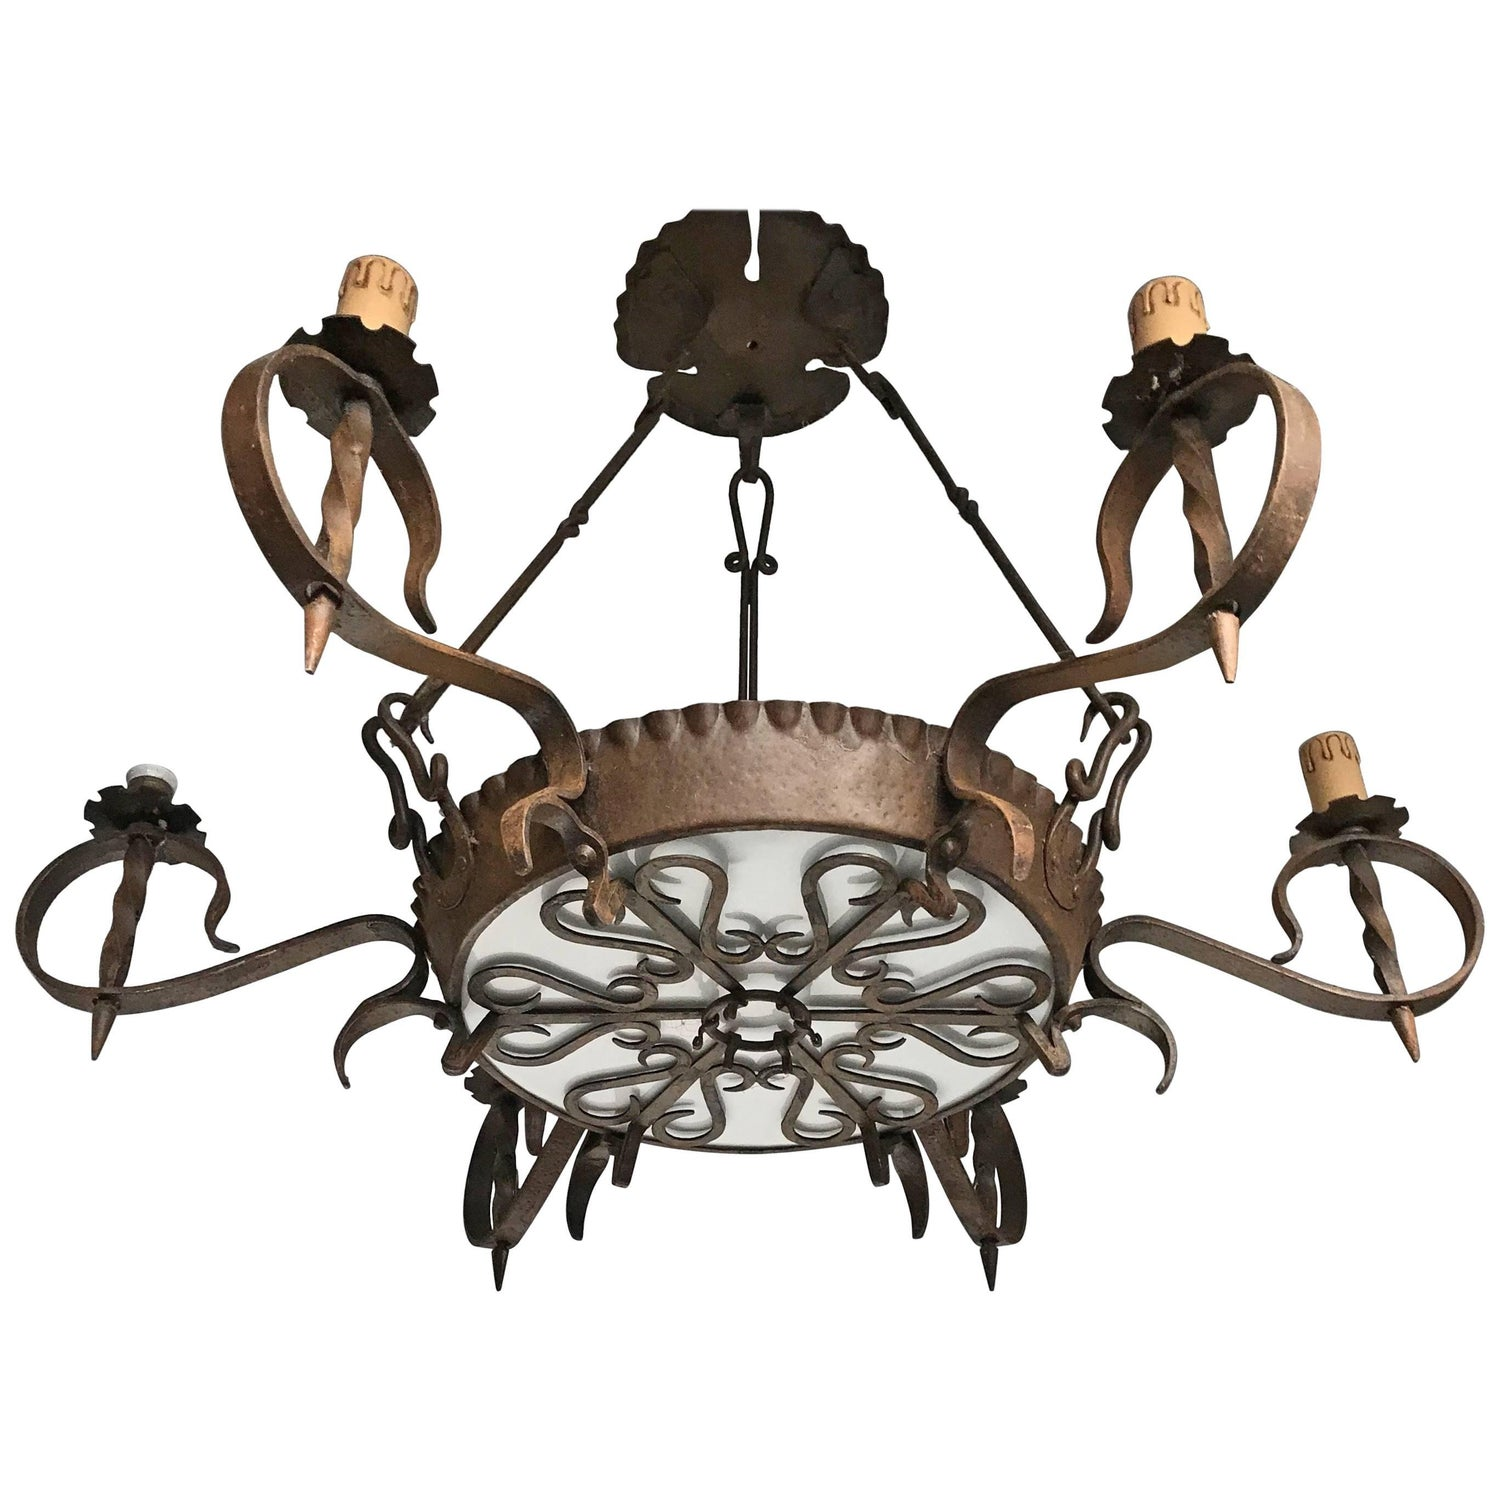 Antique Arts and Crafts Wrought Iron Six Light Castle Look